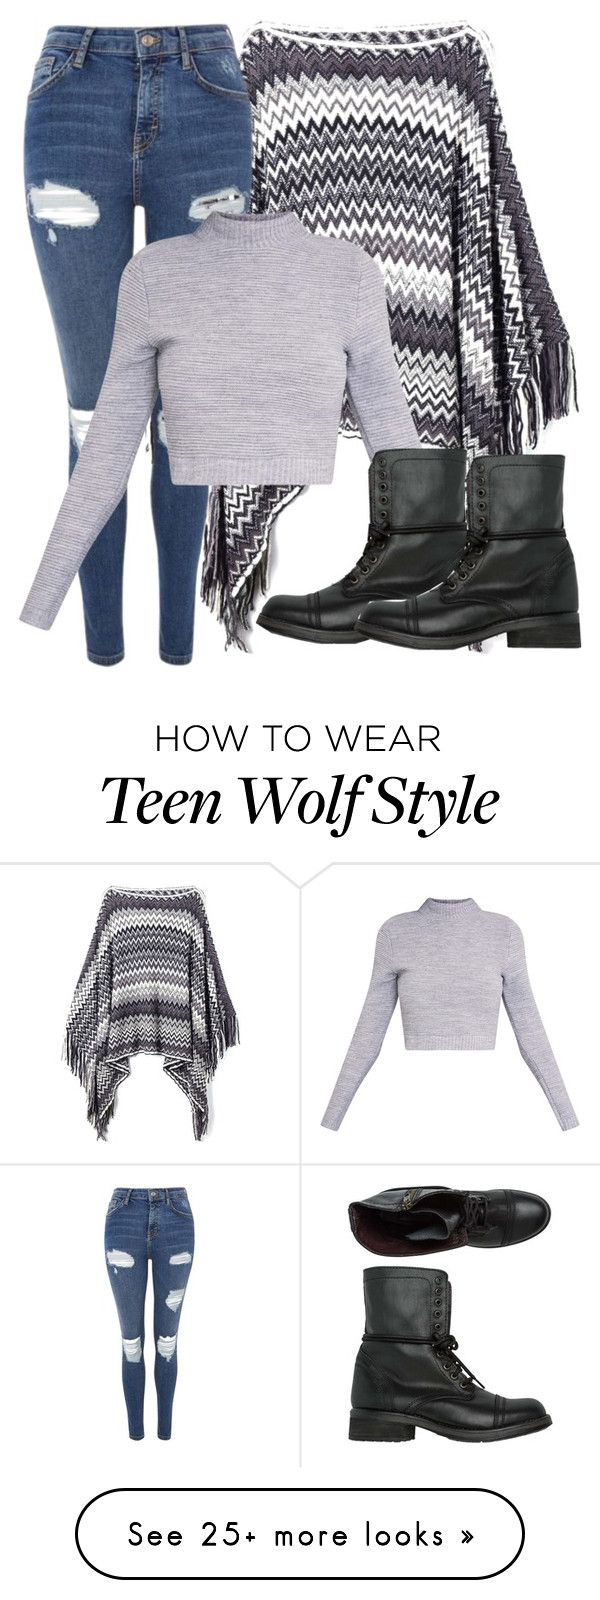 """Issac Inspired Outfit - Teen Wolf"" by clawsandclothes on Polyvore featuring Topshop and Steve Madden"